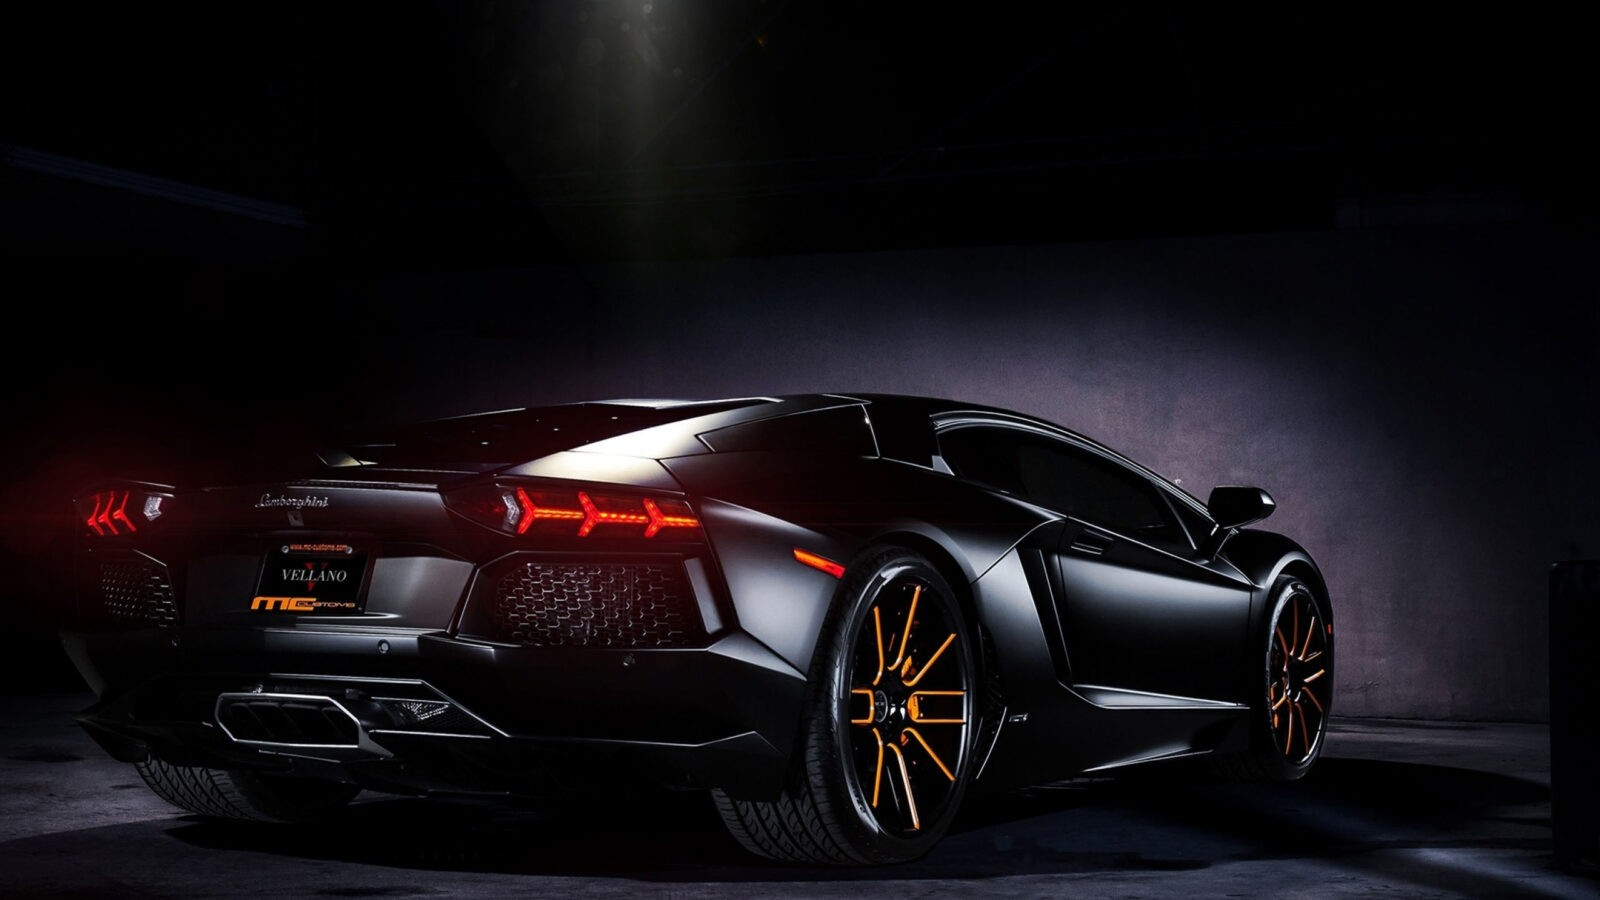 Lamborghini Aventador black HQ wallpaper